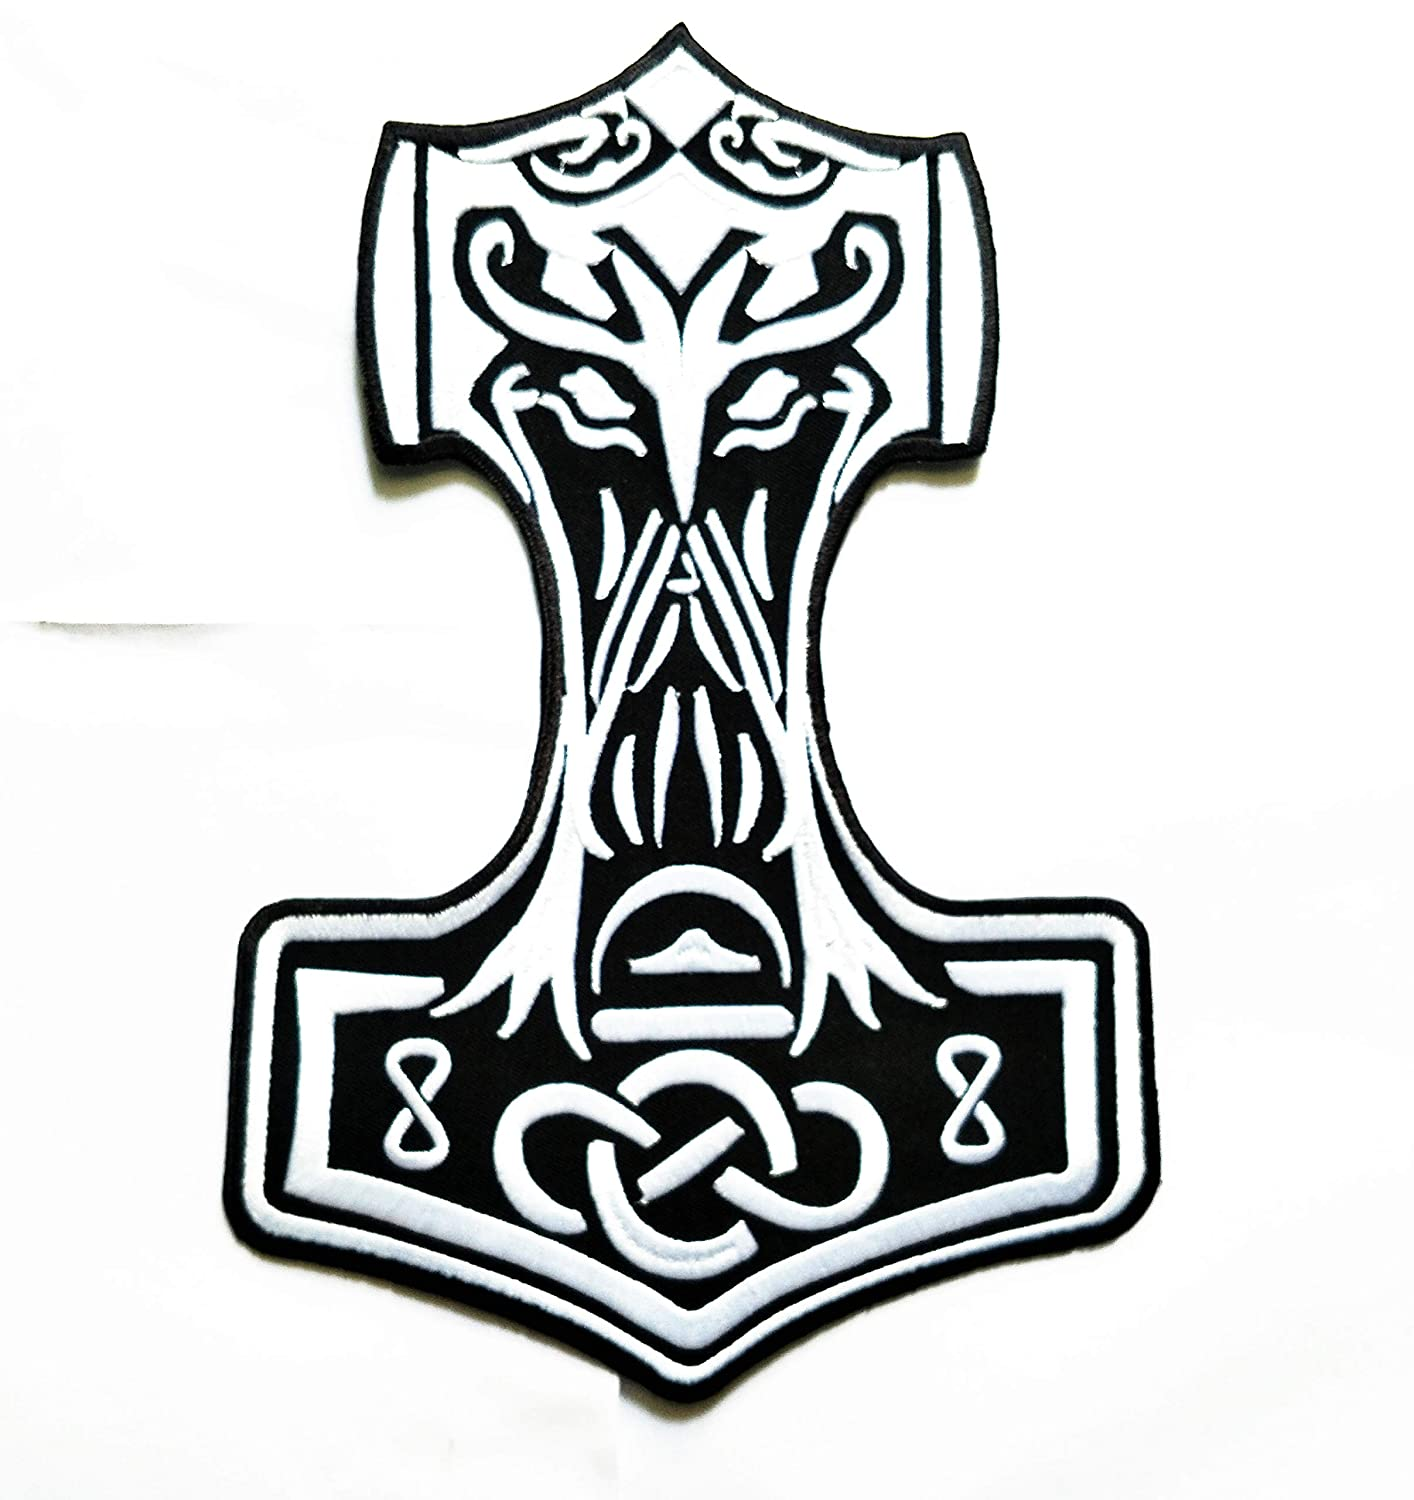 9.5''X 6.5'' Size Big Patch Big Jumbo size Patch BLACK Mjolnir Viking Thor Hammer Loki Odin Skins Patch logo jacket t-shirt Jeans Polo Patch Iron on Embroidered Logo Biker patch by Tour les jours shop